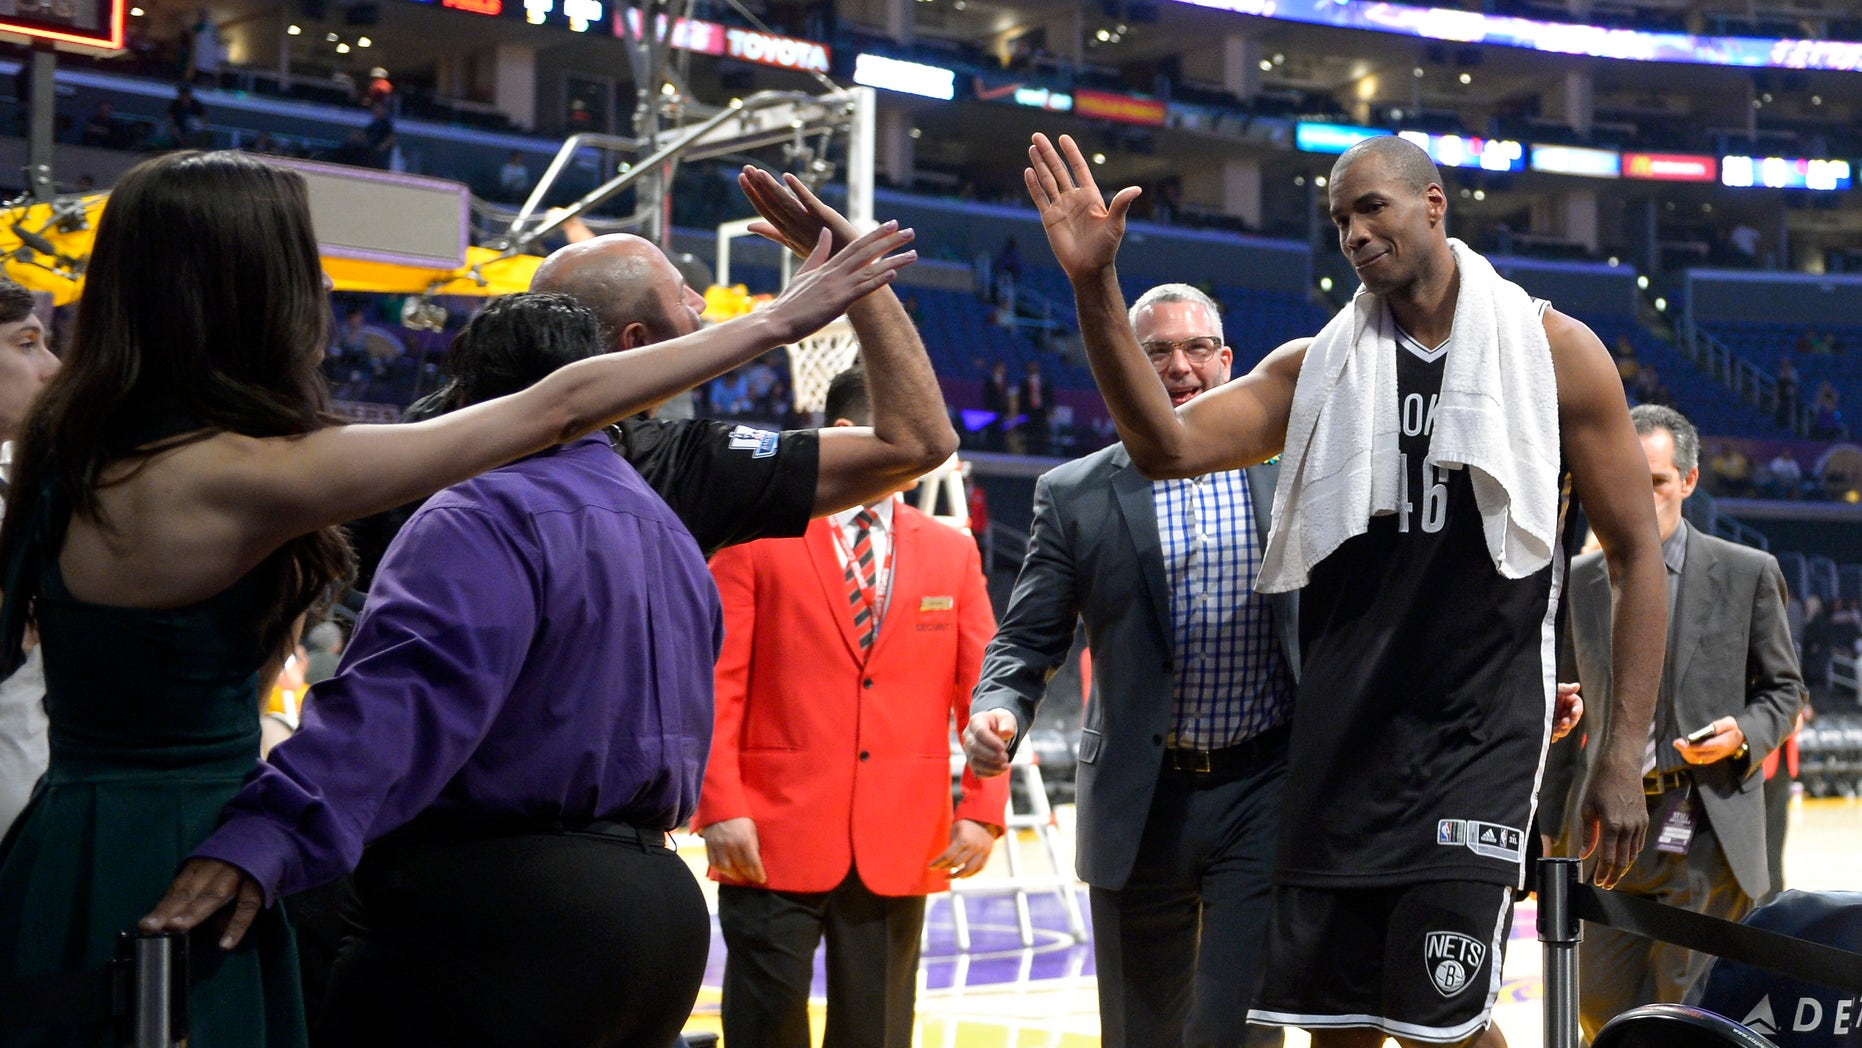 Brooklyn Nets center Jason Collins, right, is congratulated by fans after they defeated the Los Angeles Lakers in an NBA basketball game, Sunday, Feb. 23, 2014, in Los Angeles. Brooklyn won 108-102. (AP Photo/Mark J. Terrill)